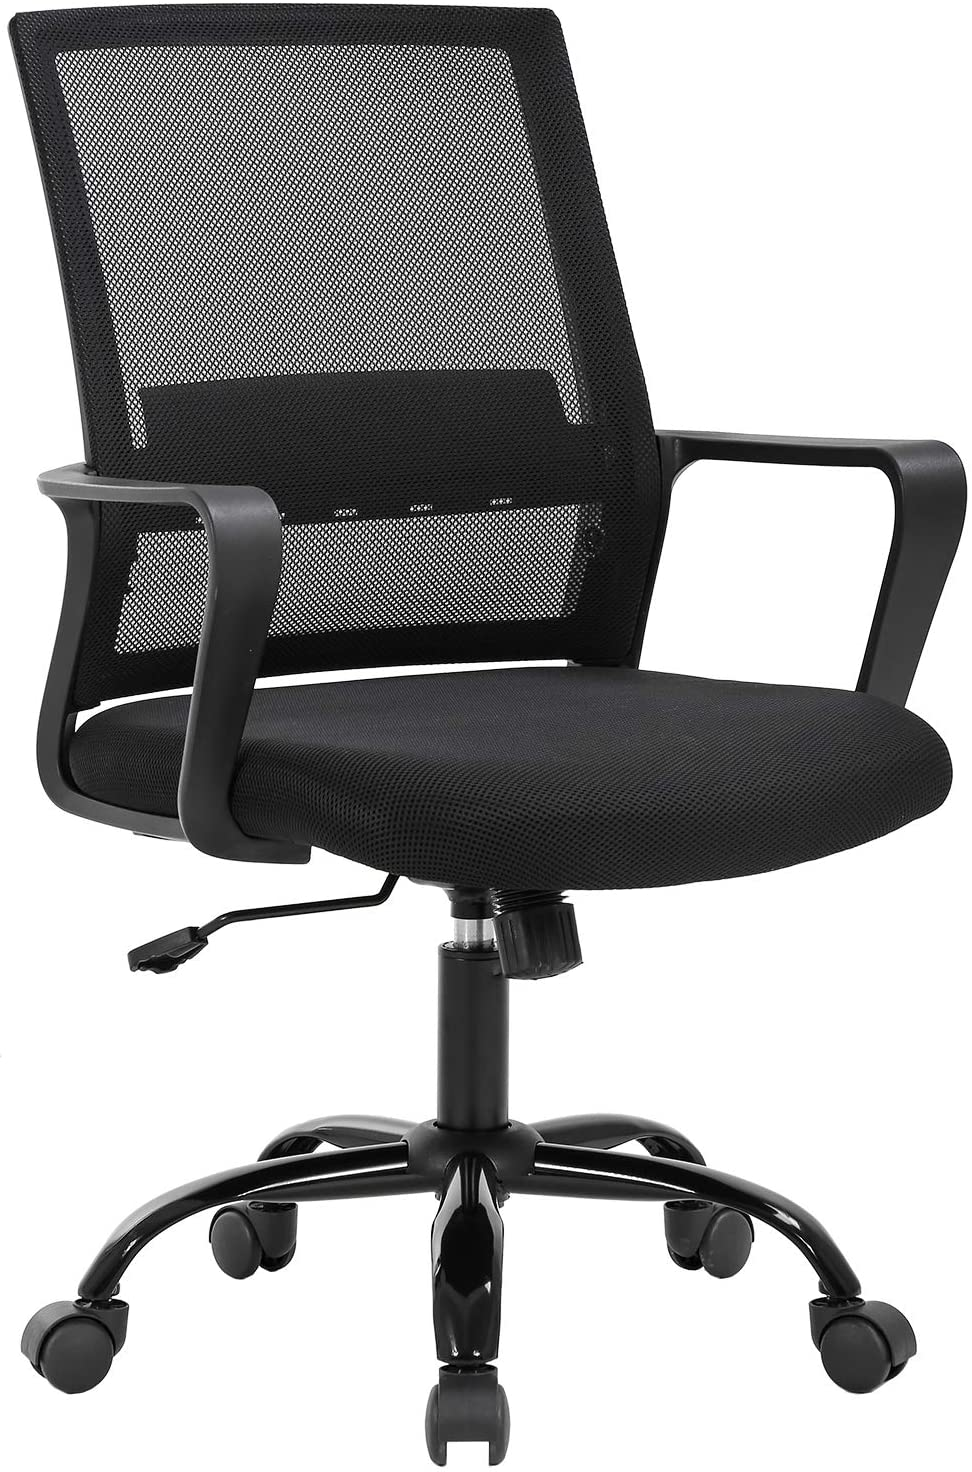 Home Office Chair Ergonomic Desk Chair Swivel Rolling Computer Chair Executive Lumbar Support Task Mesh Chair Adjustable Stool for Women Men,Black